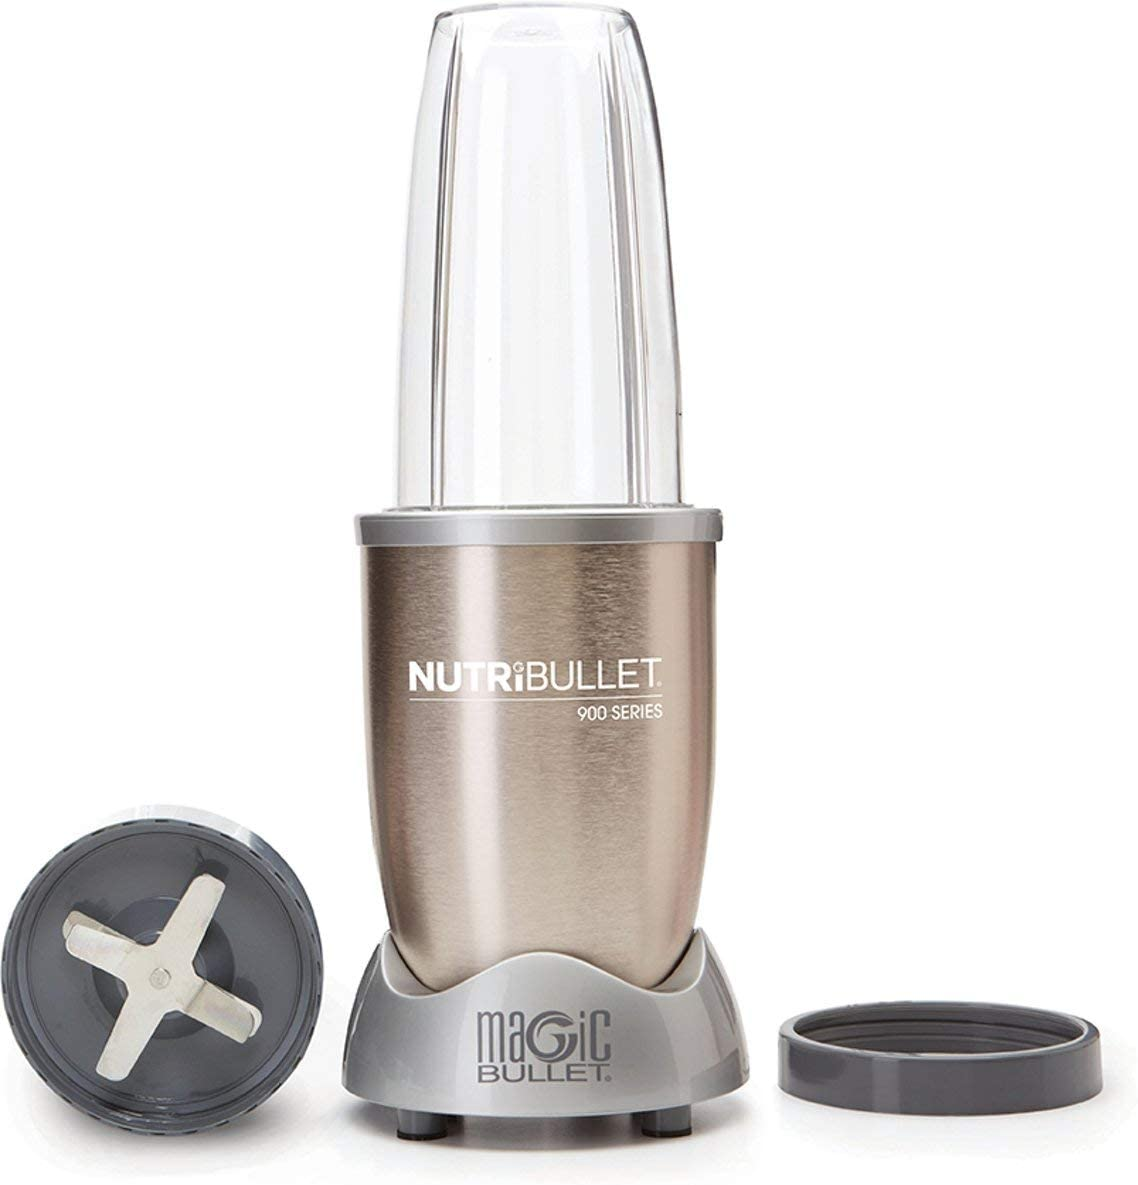 NutriBullet Pro 900W Extractor 5 Pieces: Amazon.de: Küche & Haushalt